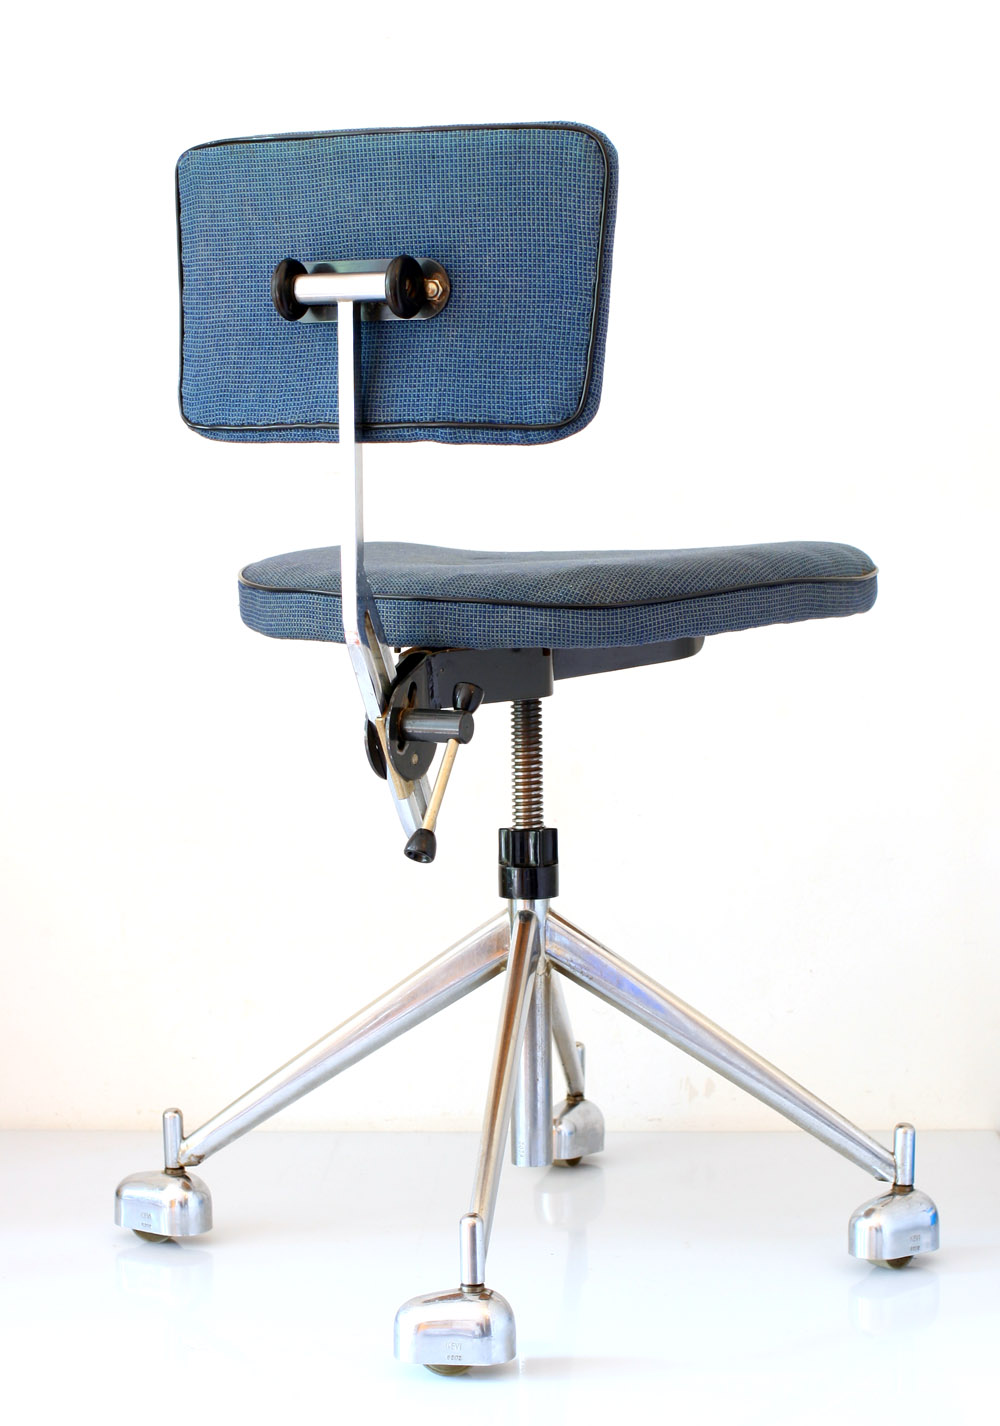 scandinavian office chairs. KEVI Adjustable Retro Scandinavian Office Chair Chairs I